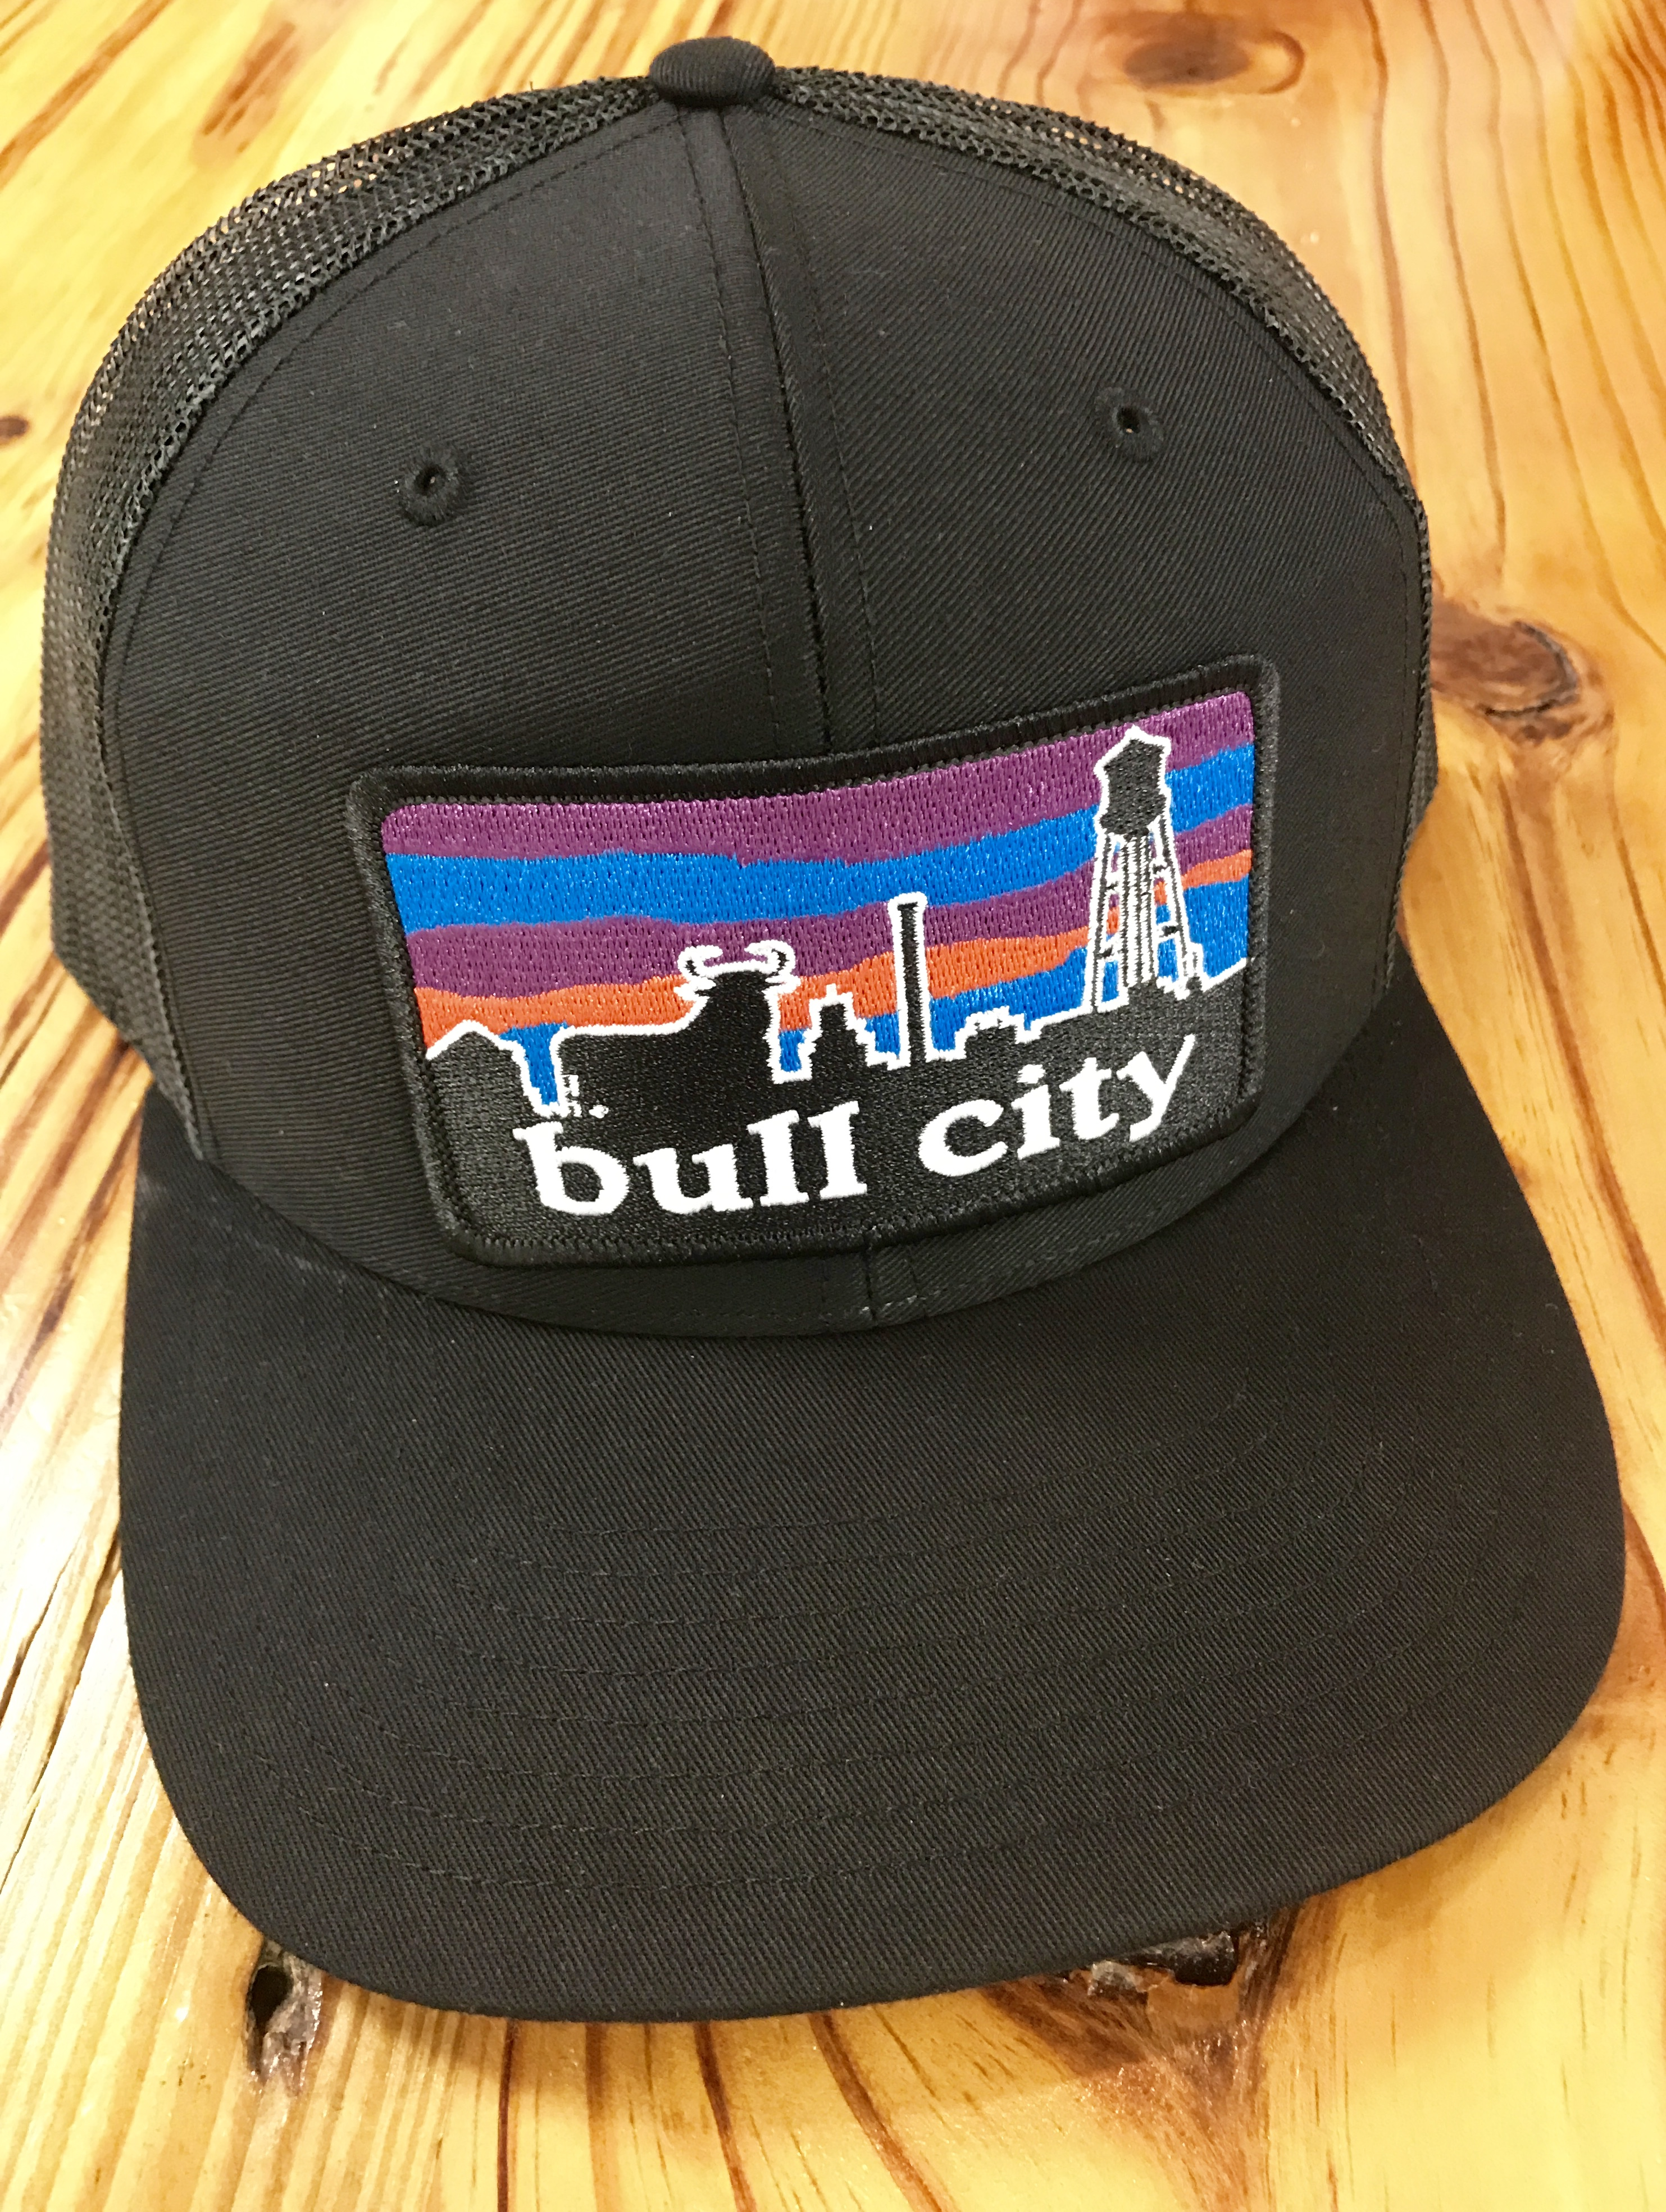 Ag Outfitters Bull City Skyline Durham Nc Patch Trucker Hat Black